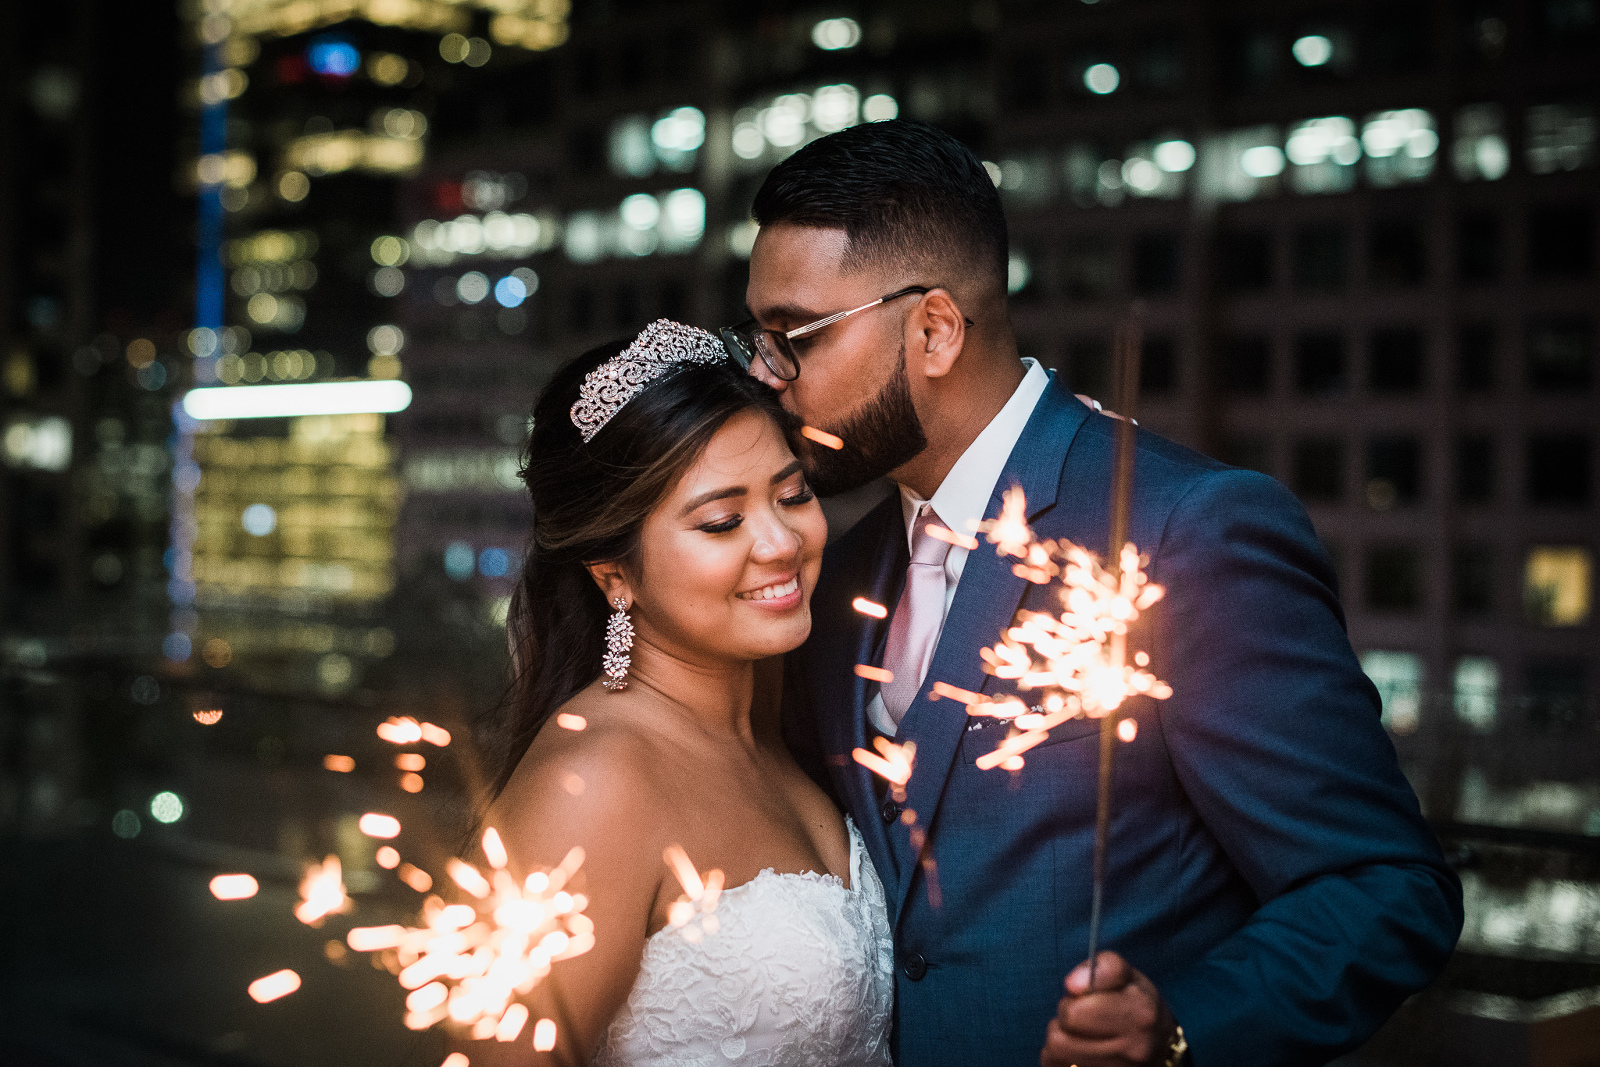 South asian bride and groom holding sparklers at night time snuggling on the rooftop of Malaparte in downtown Toronto